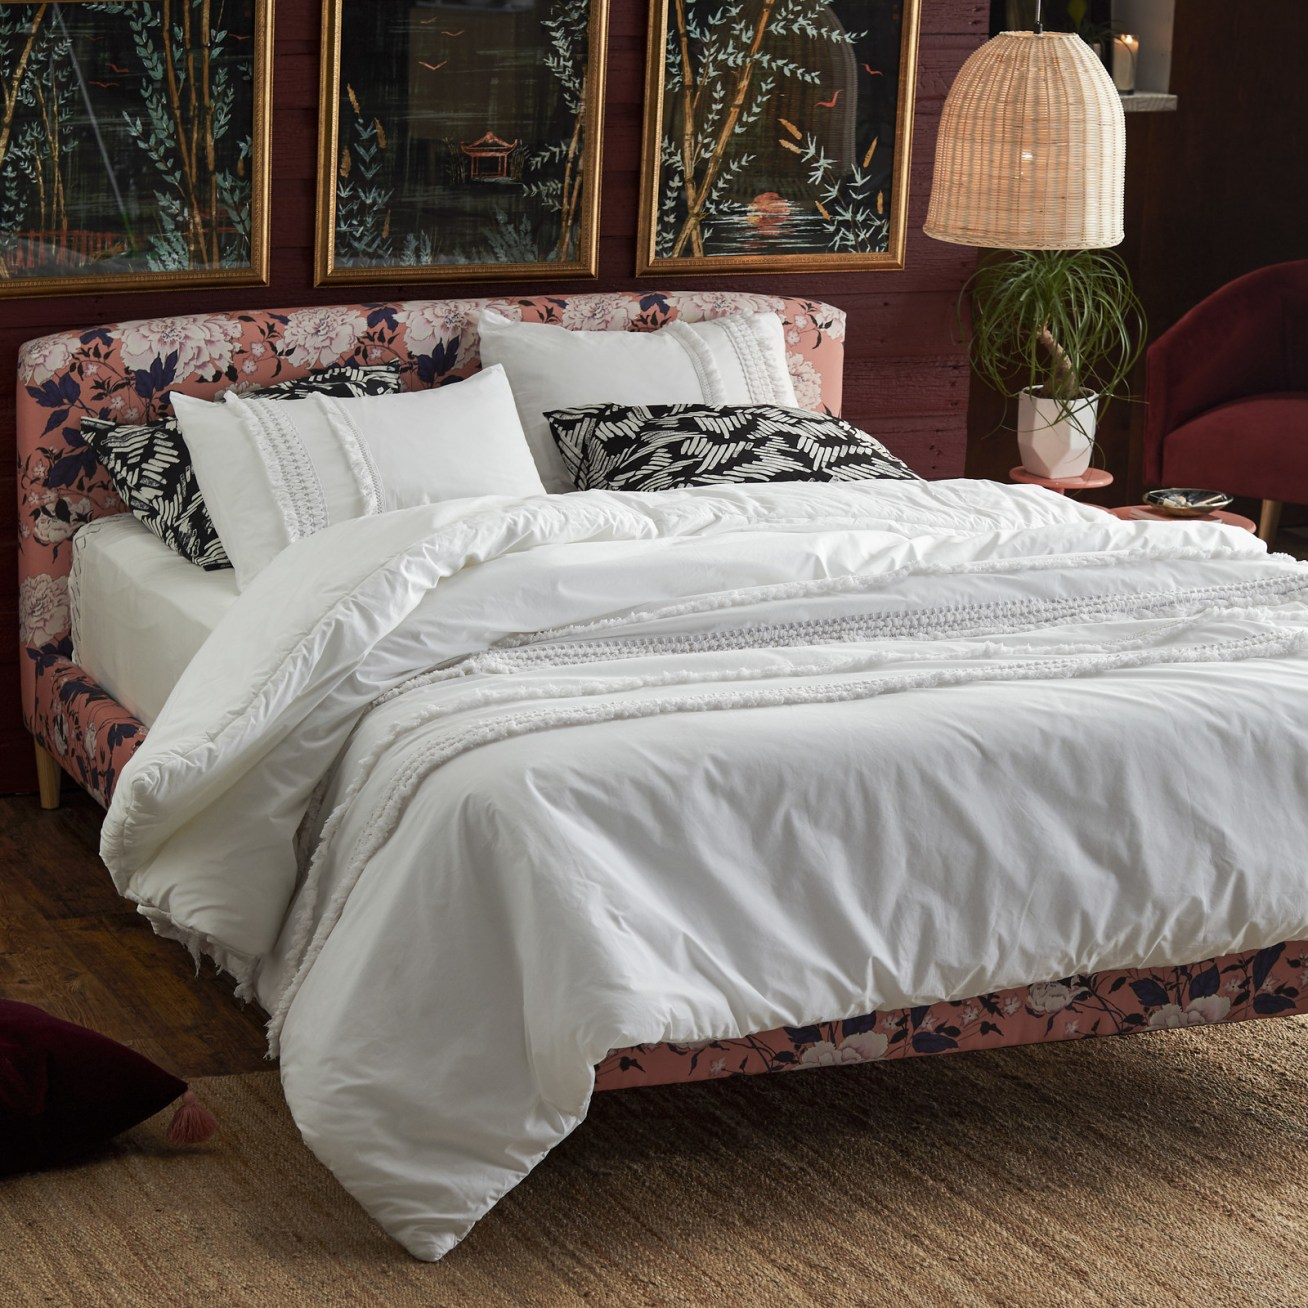 Includes a comforter and two matching shams. Price: + (available in two colors and two sizes)